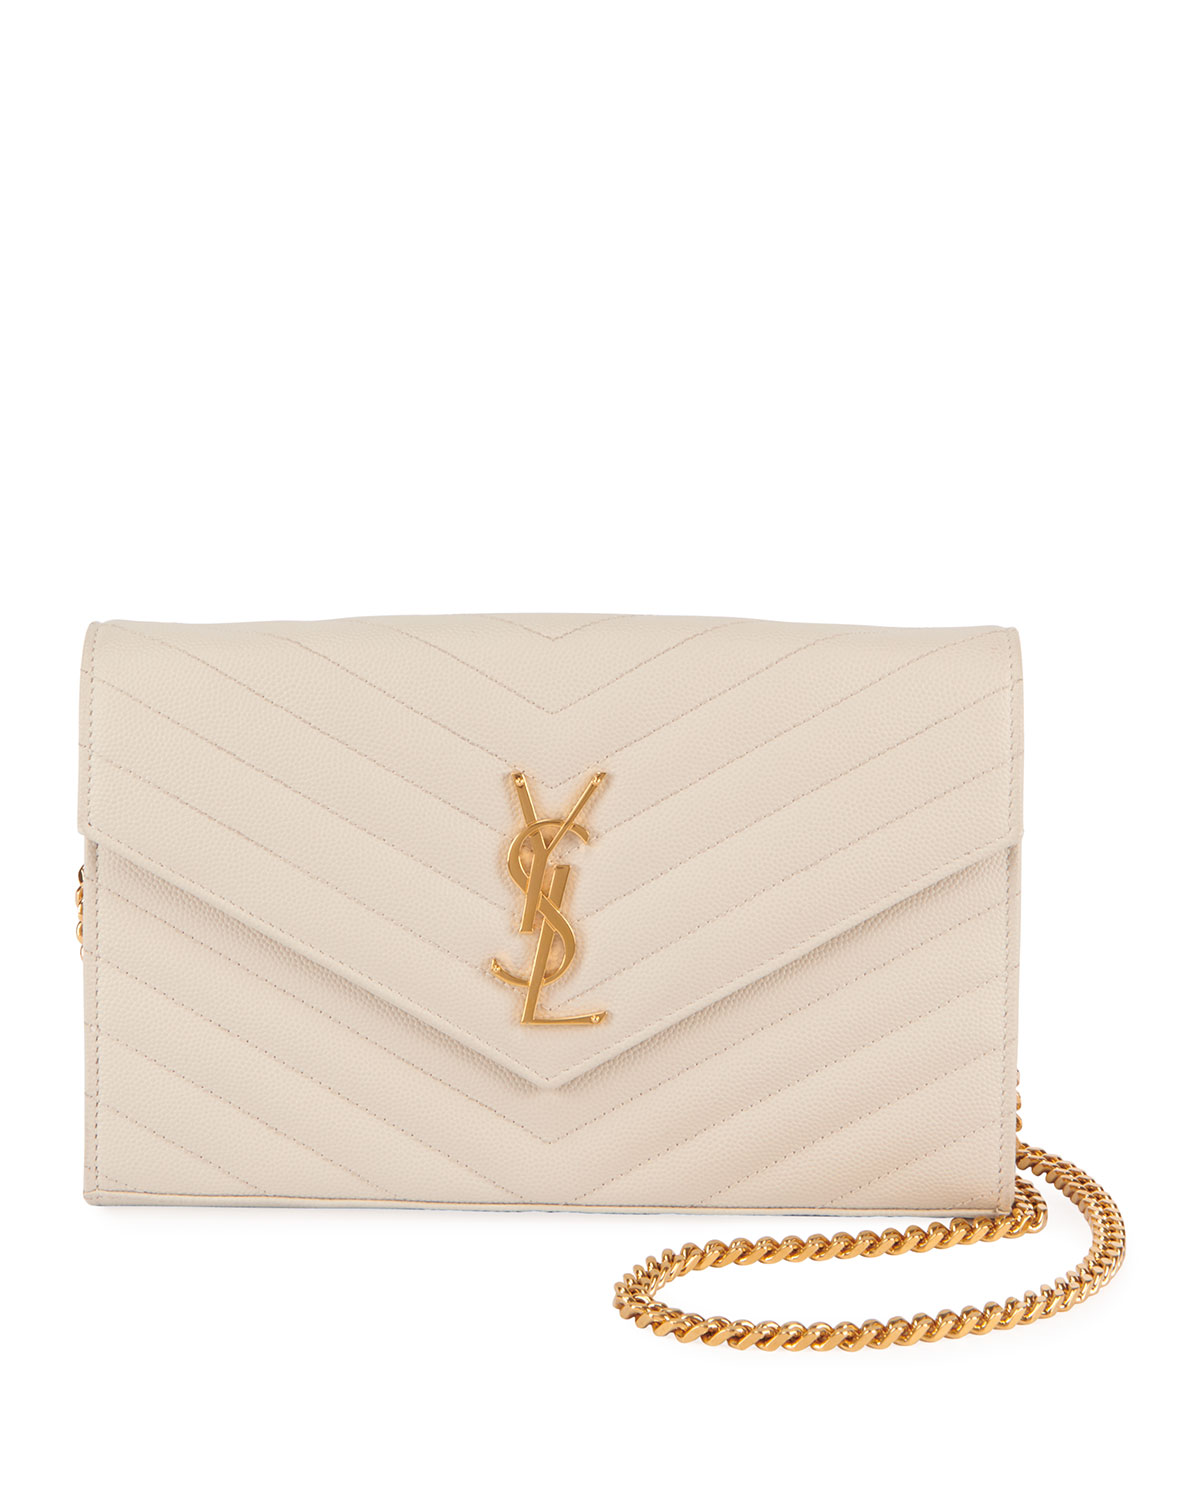 6113c90387ae Saint Laurent Matelasse Monogram YSL Wallet on Chain | Neiman Marcus